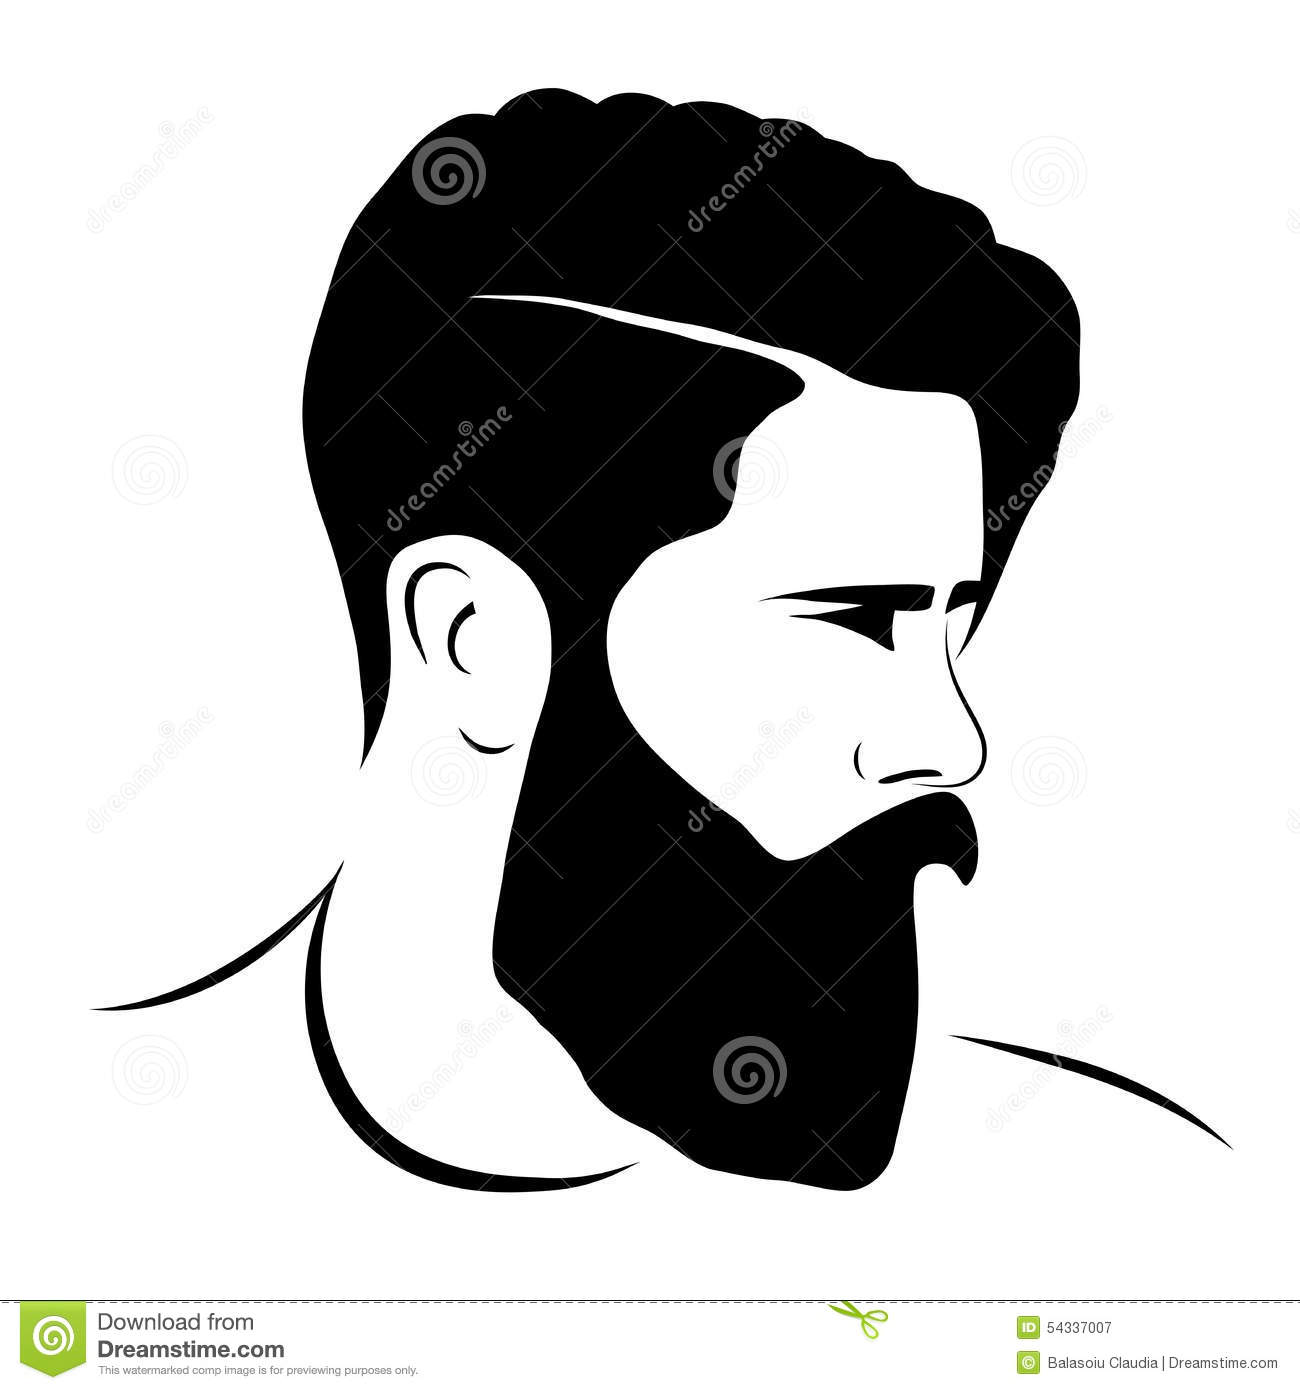 Man Silhouette Hipster Style Stock Vector Image 54337007